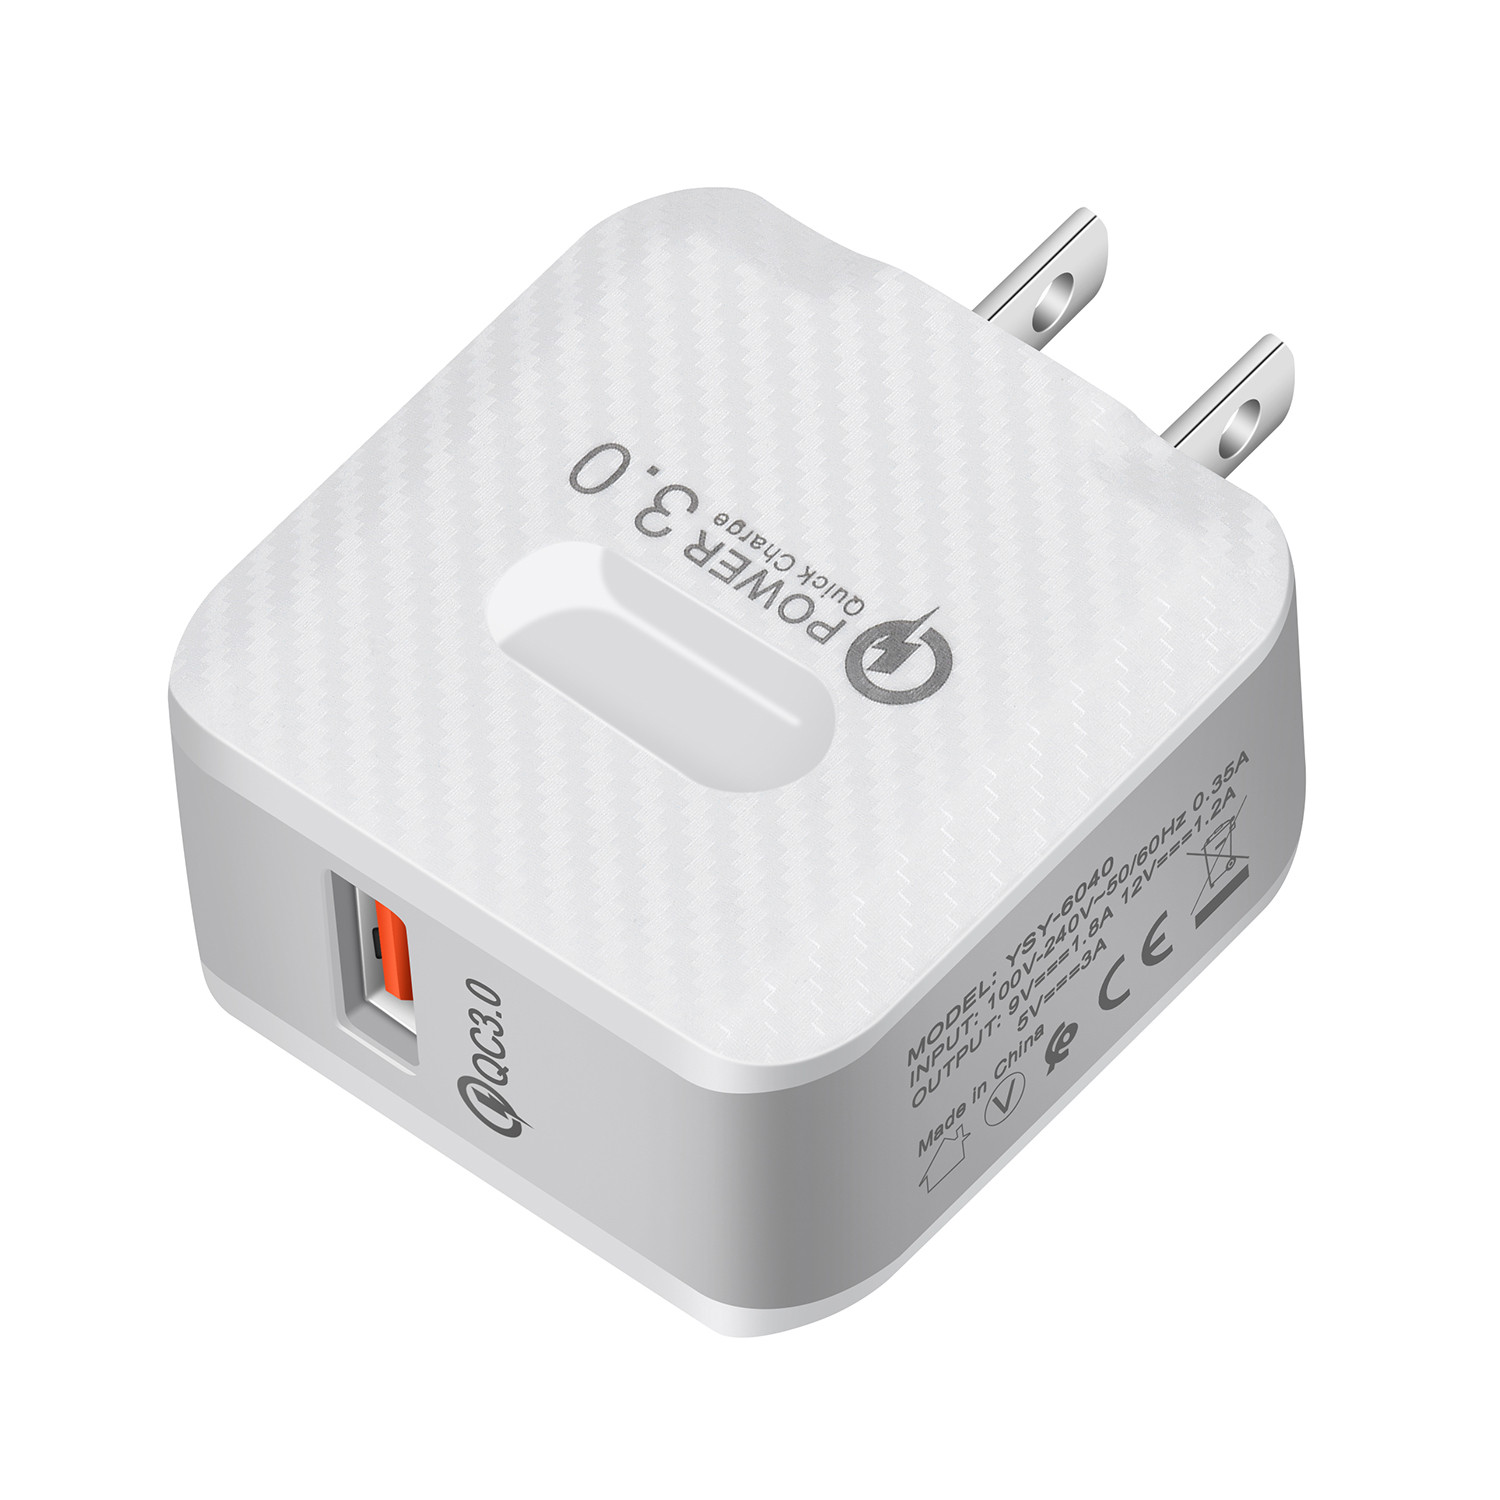 Ouhaobin USB Charger Quick Charge 3.0 For Phone For Samung Fast Wall Charger US Plug Wall Adapter Mobile Charging Phone